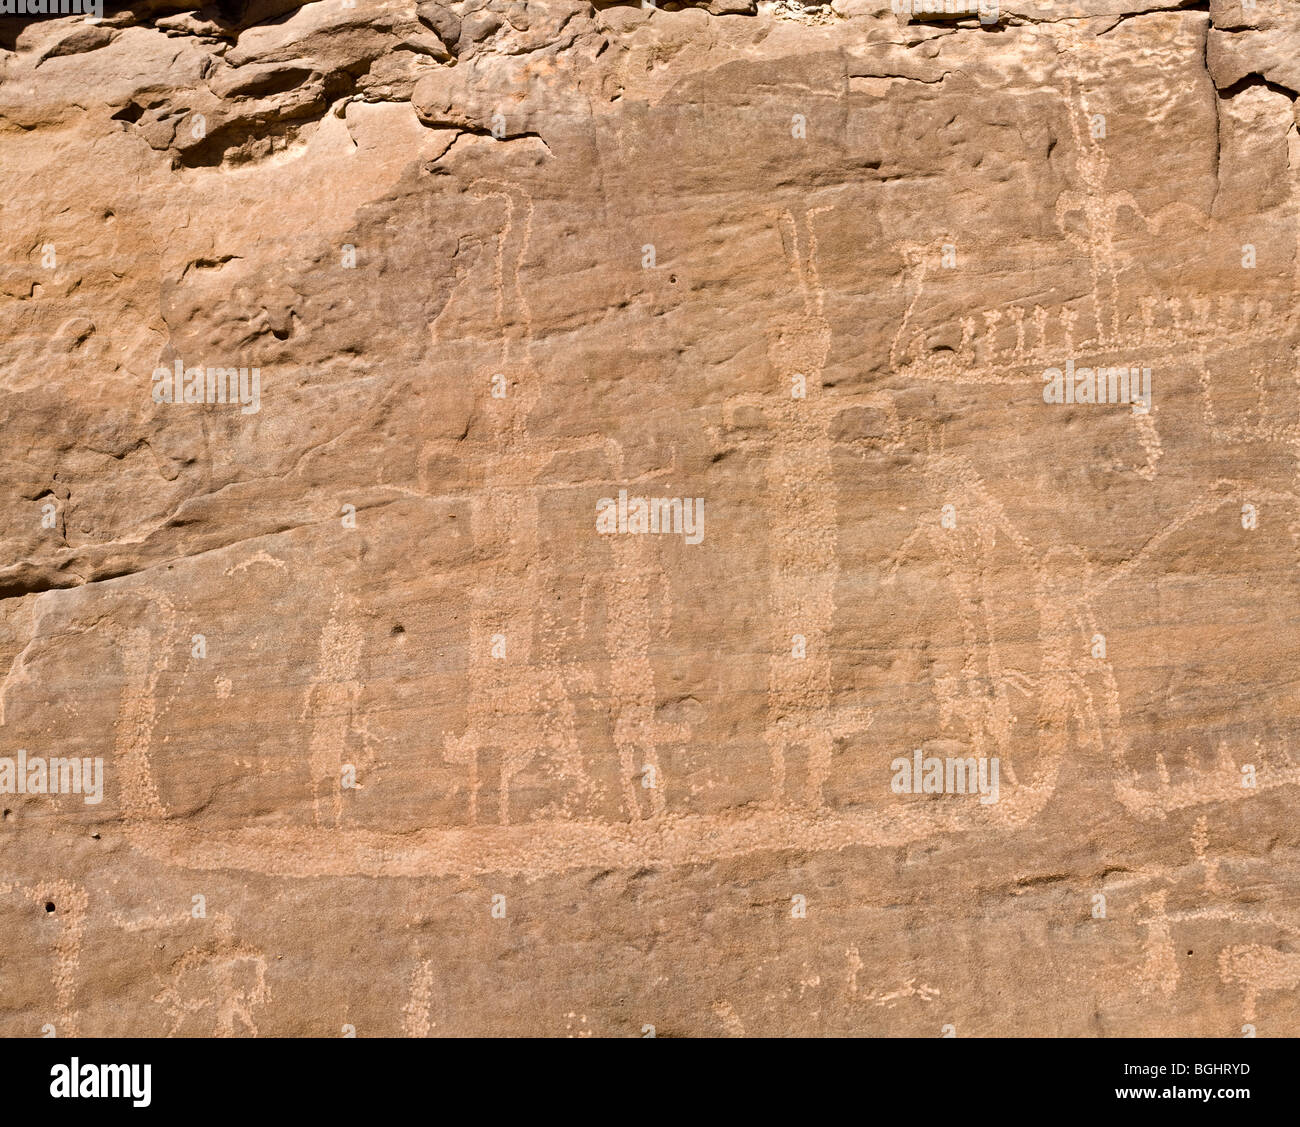 Winklers famous Rock-Art site 26 in Wadi Abu Wasil in the Eastern Desert of Egypt. - Stock Image